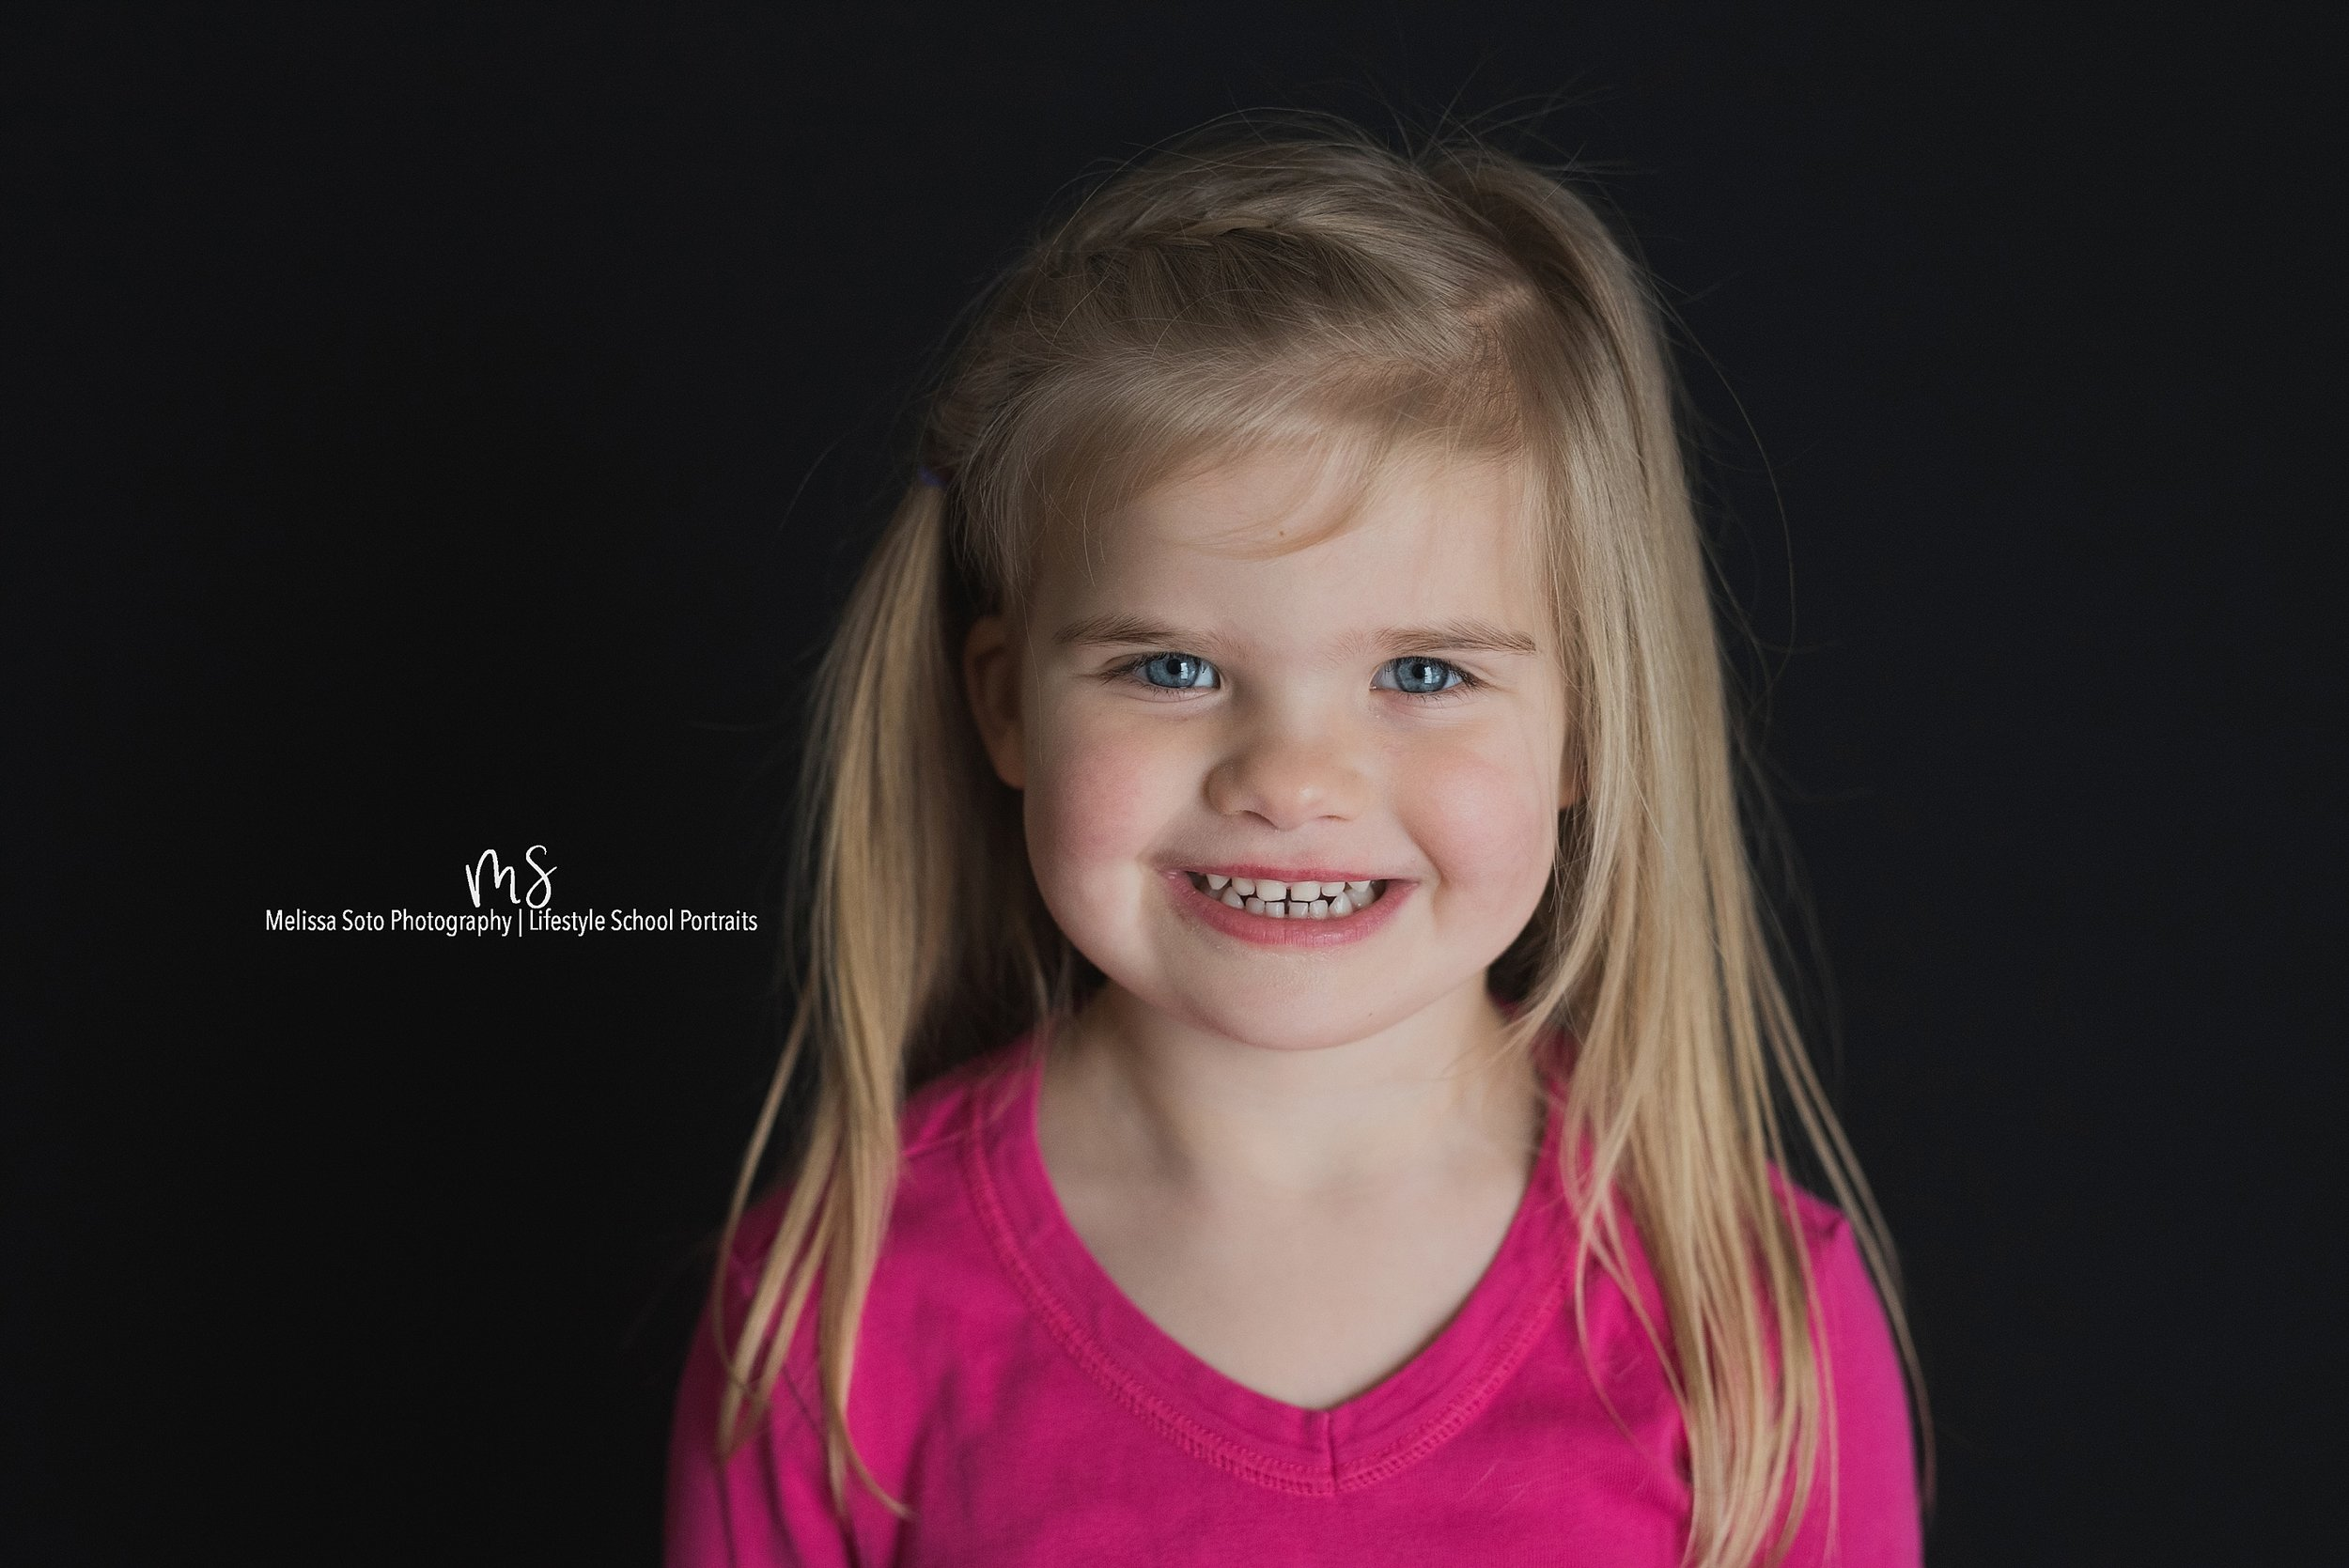 School Photography | Lifestyle School Portraits by Melissa Soto Photography